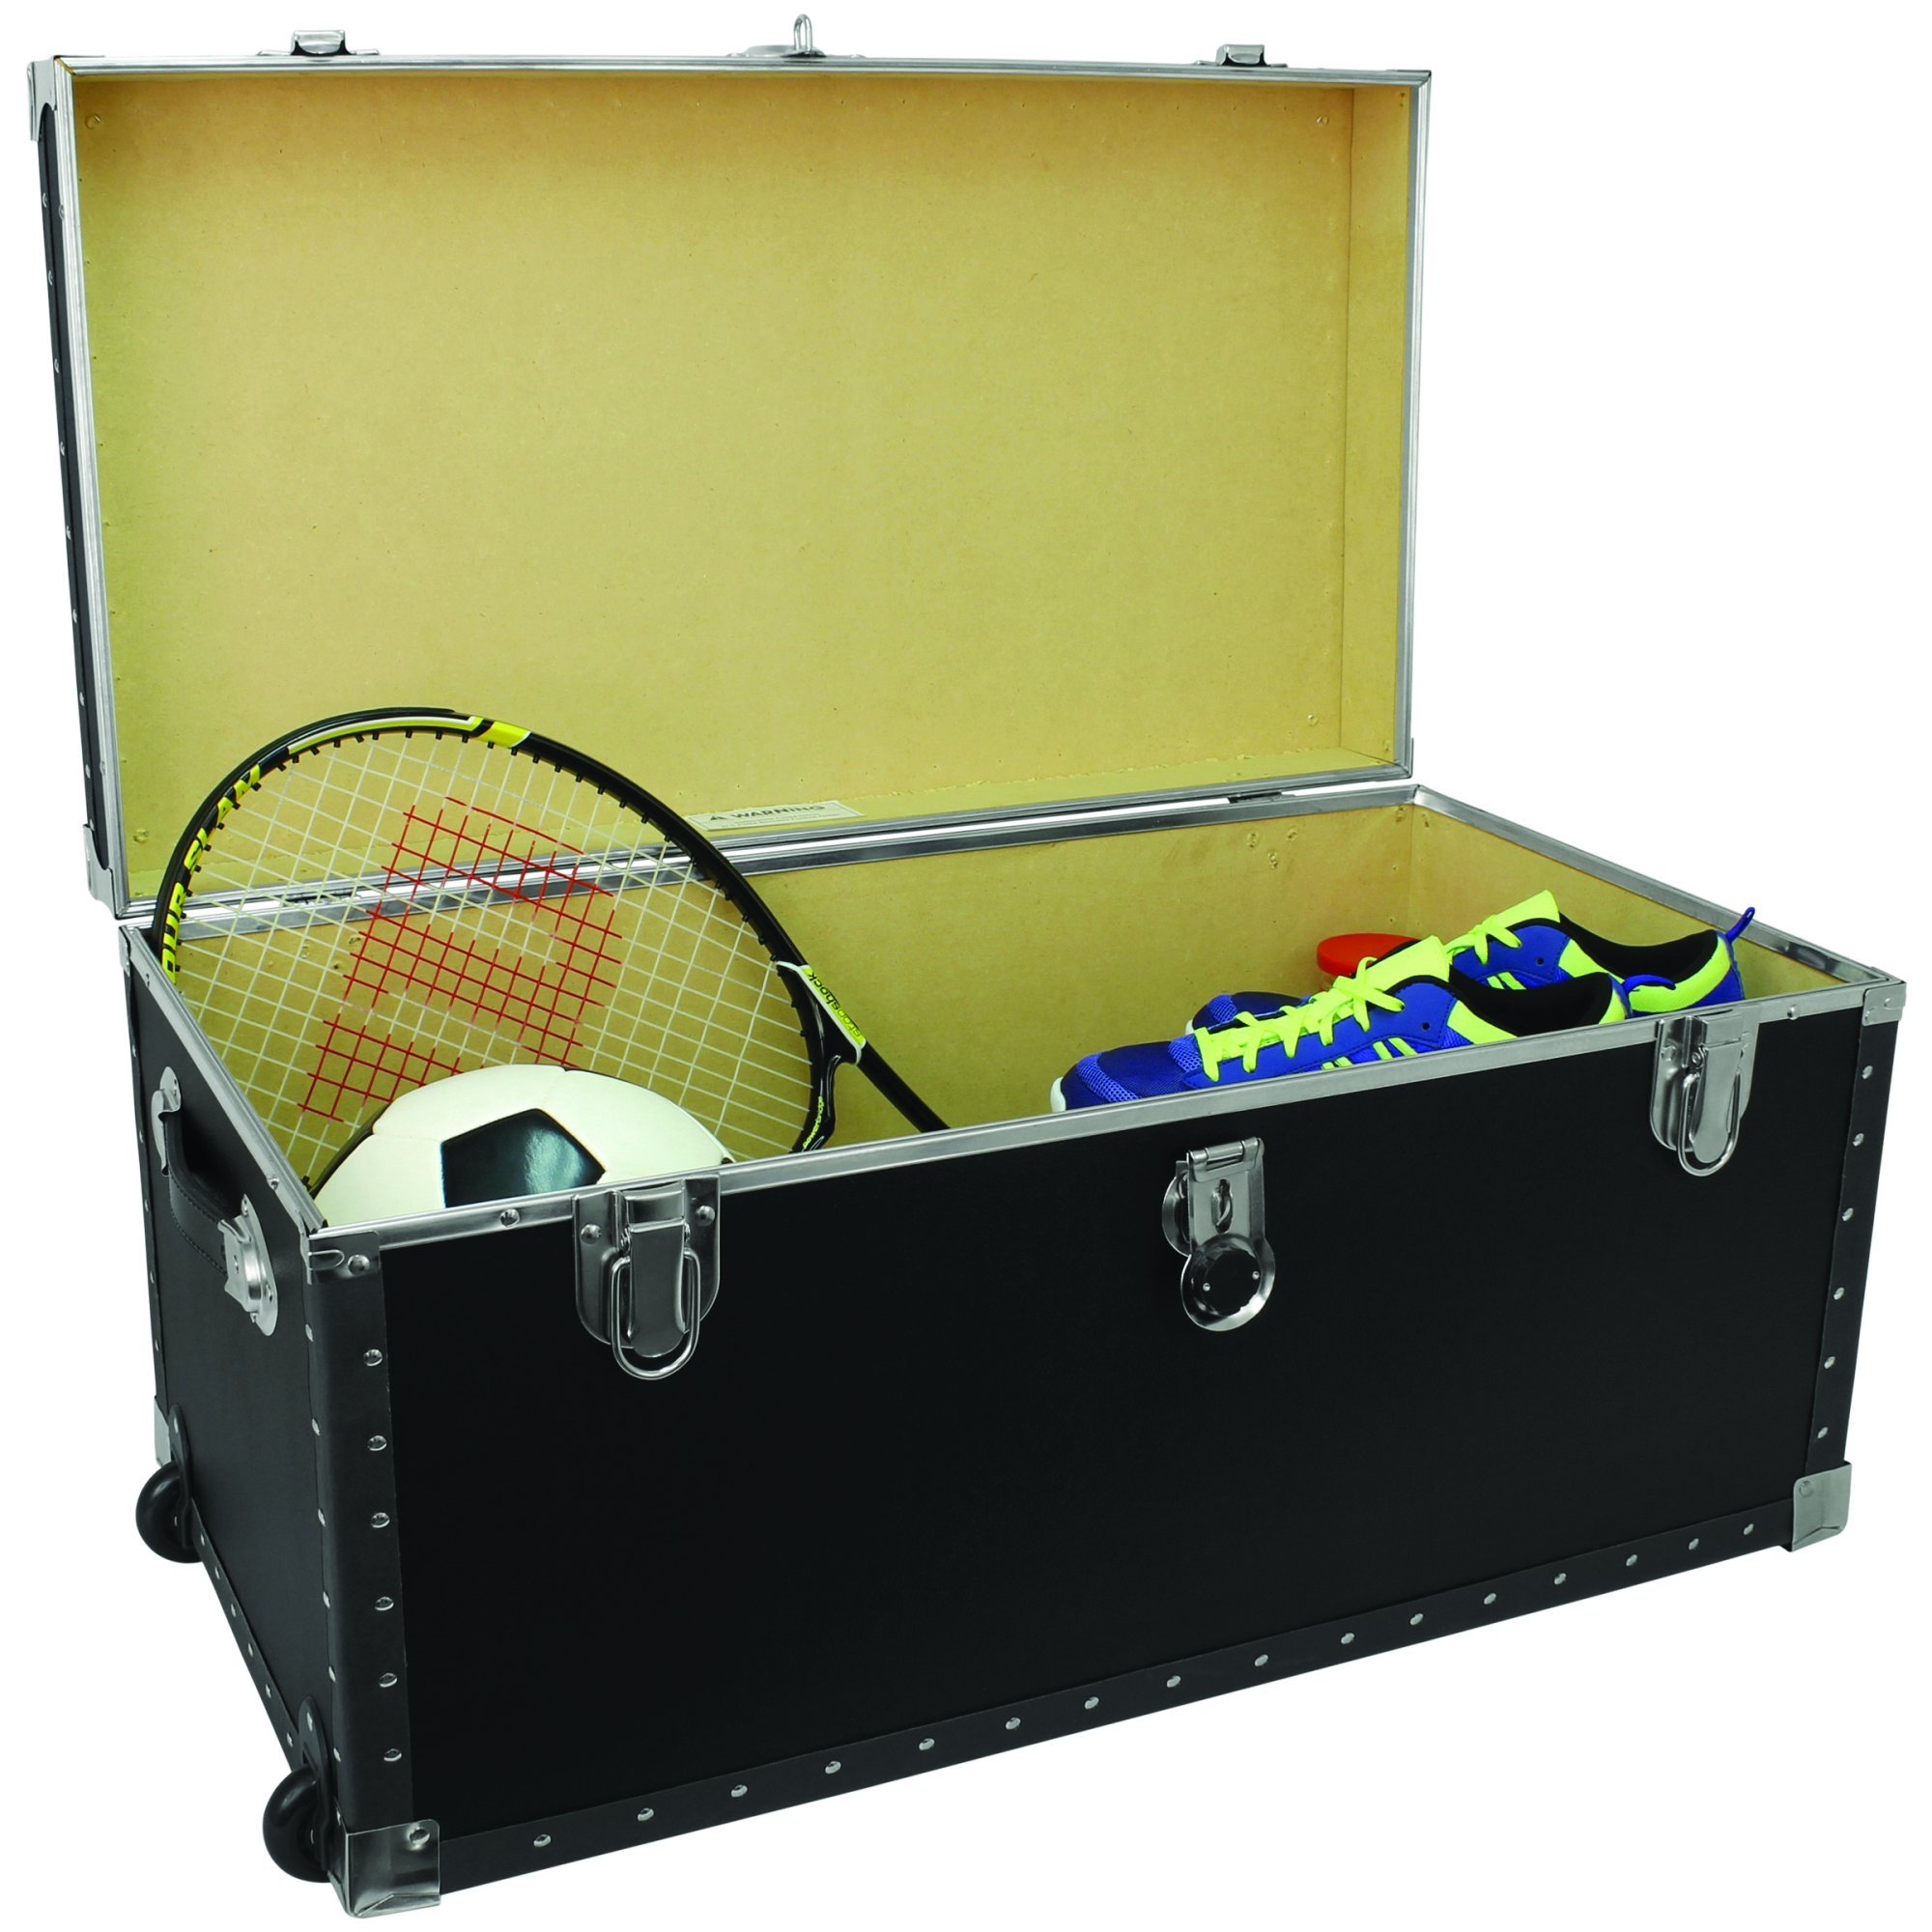 Footlocker Trunk with Wheels, 31'' Black Durable Wood Construction Nickel Trim Ideal for The College Student or Homeowner Add Extra Space and Provide an Attractive Piece of Furniture to a Room